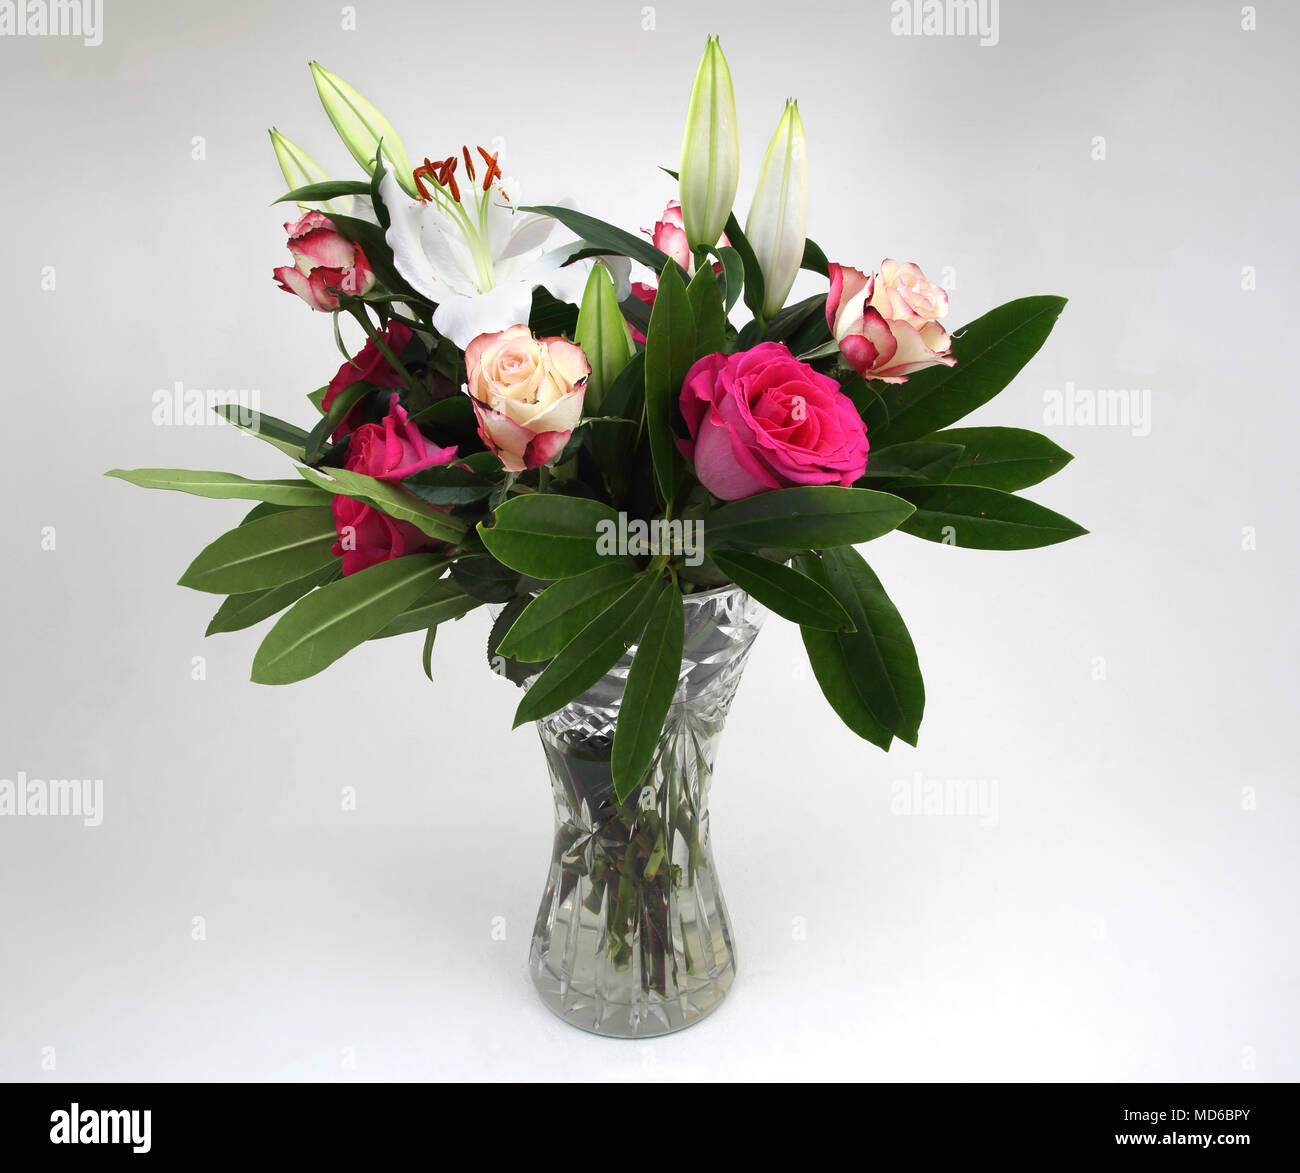 Crystal Flowers In Vase High Resolution Stock Photography And Images Alamy